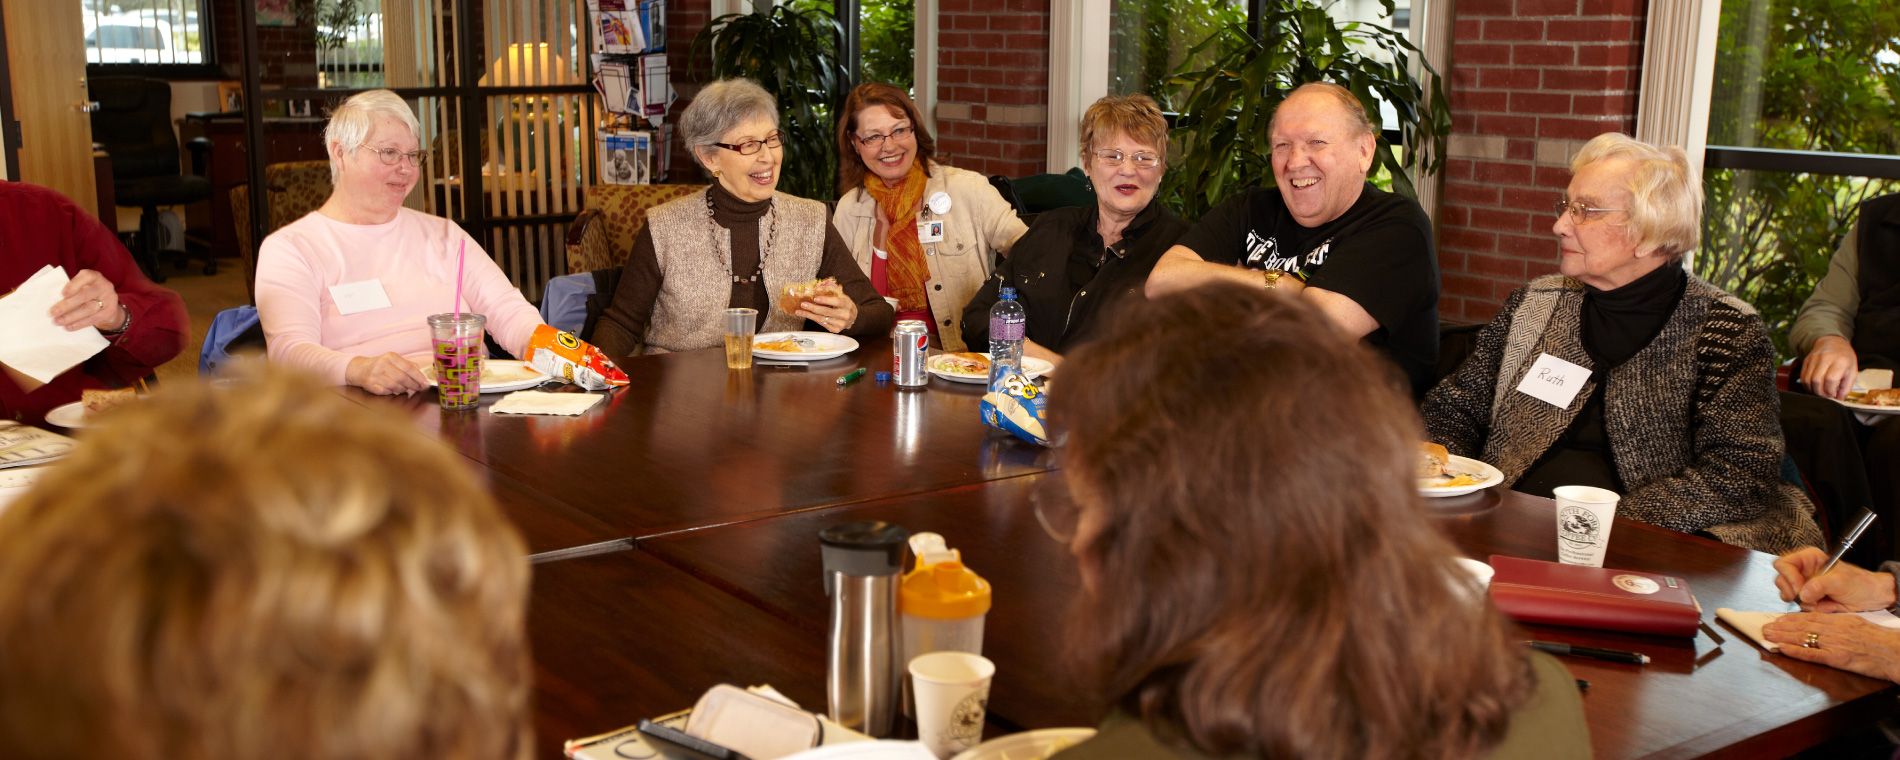 WVCI_patients_SupportGroups